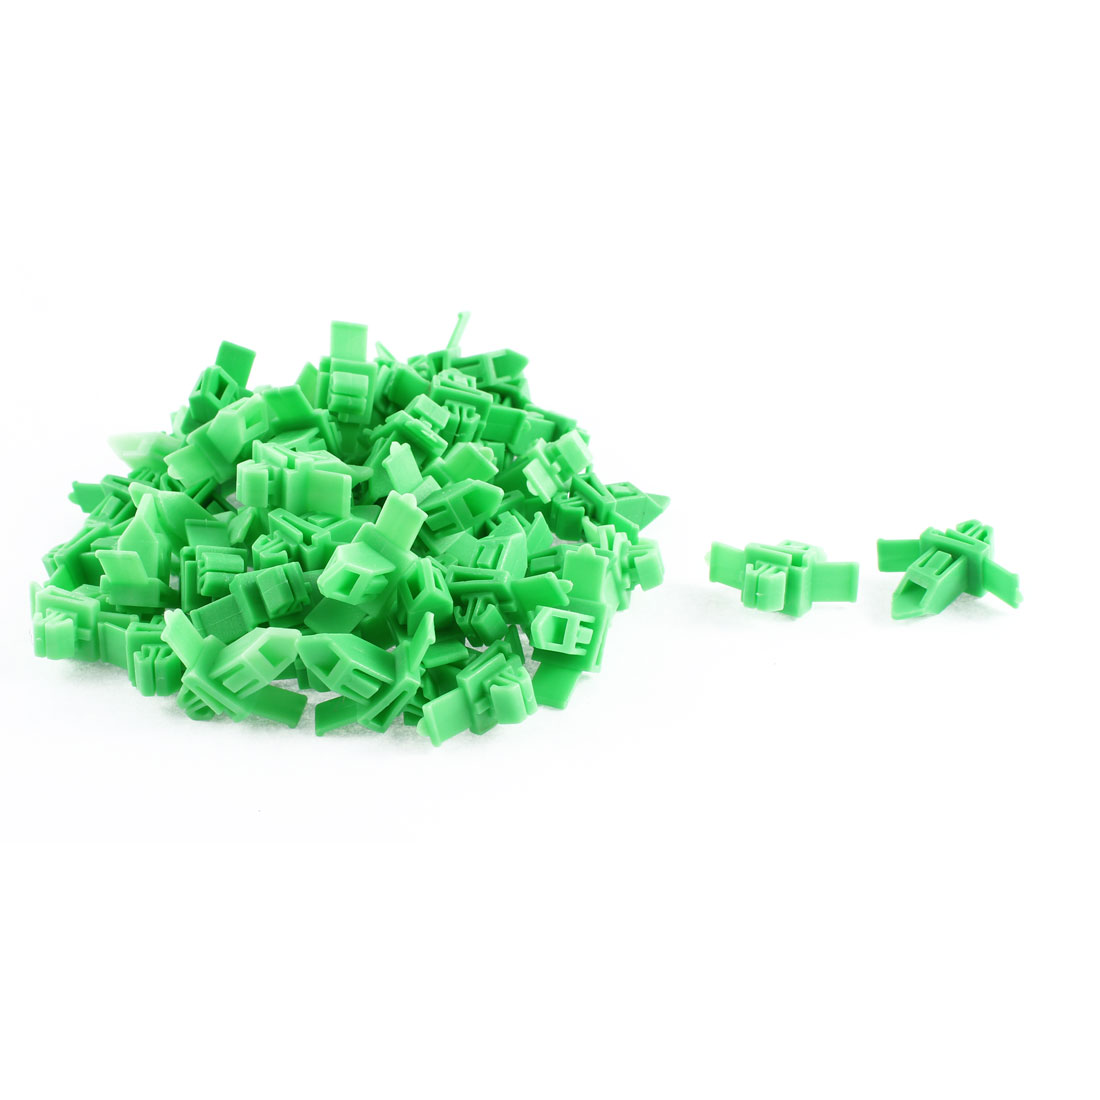 52Pcs Green Door Card Trim Moulding Retainer Clips 9 x 7mm Hole for Toyota